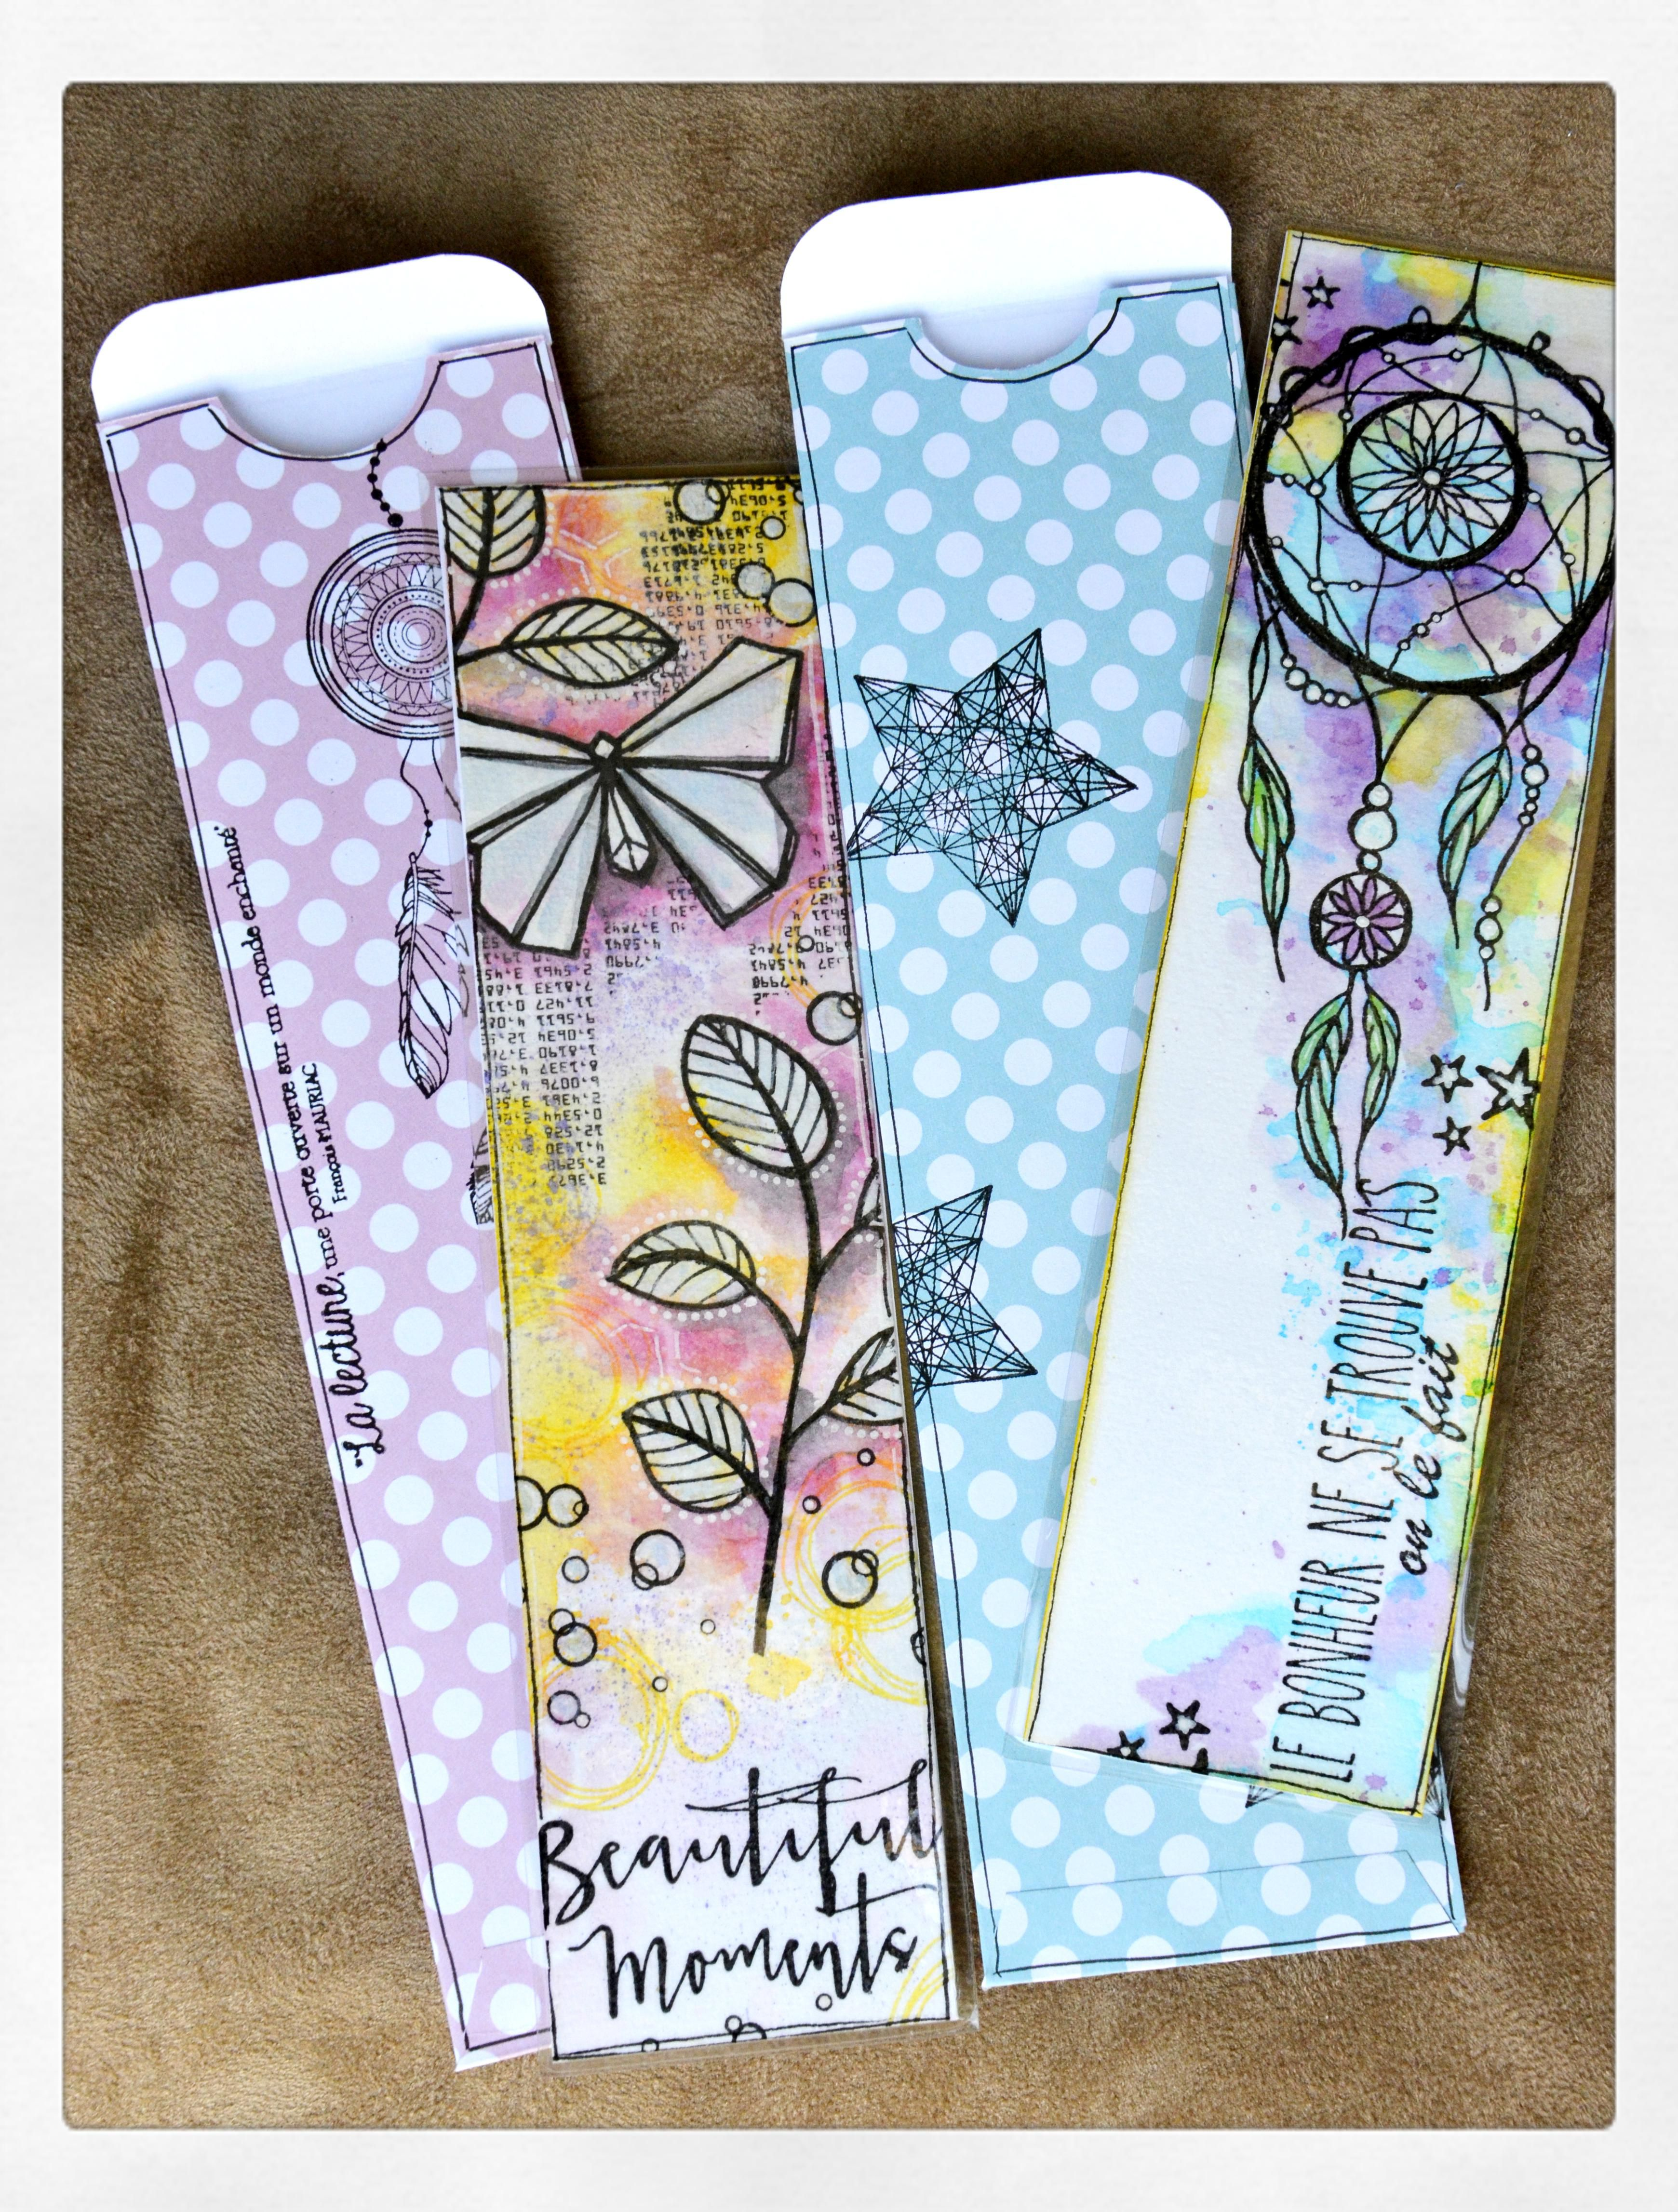 Marque page Juaime Pinterest Bookmarks Scrap and Bookmark ideas